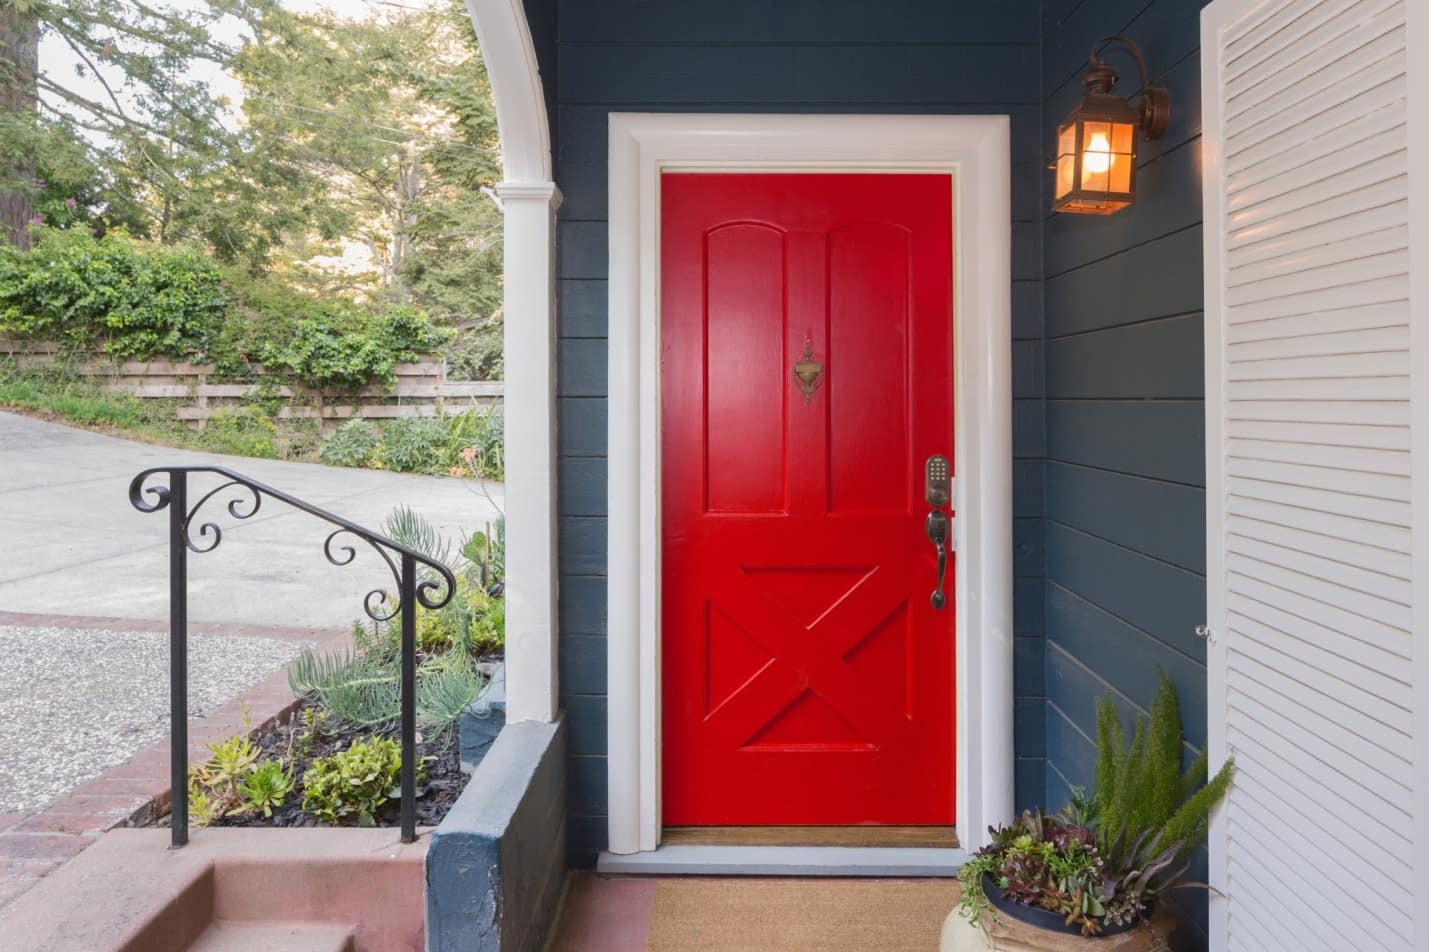 When One Door Closes: What Are the Benefits of Fiberglass Doors? Bright red entrance